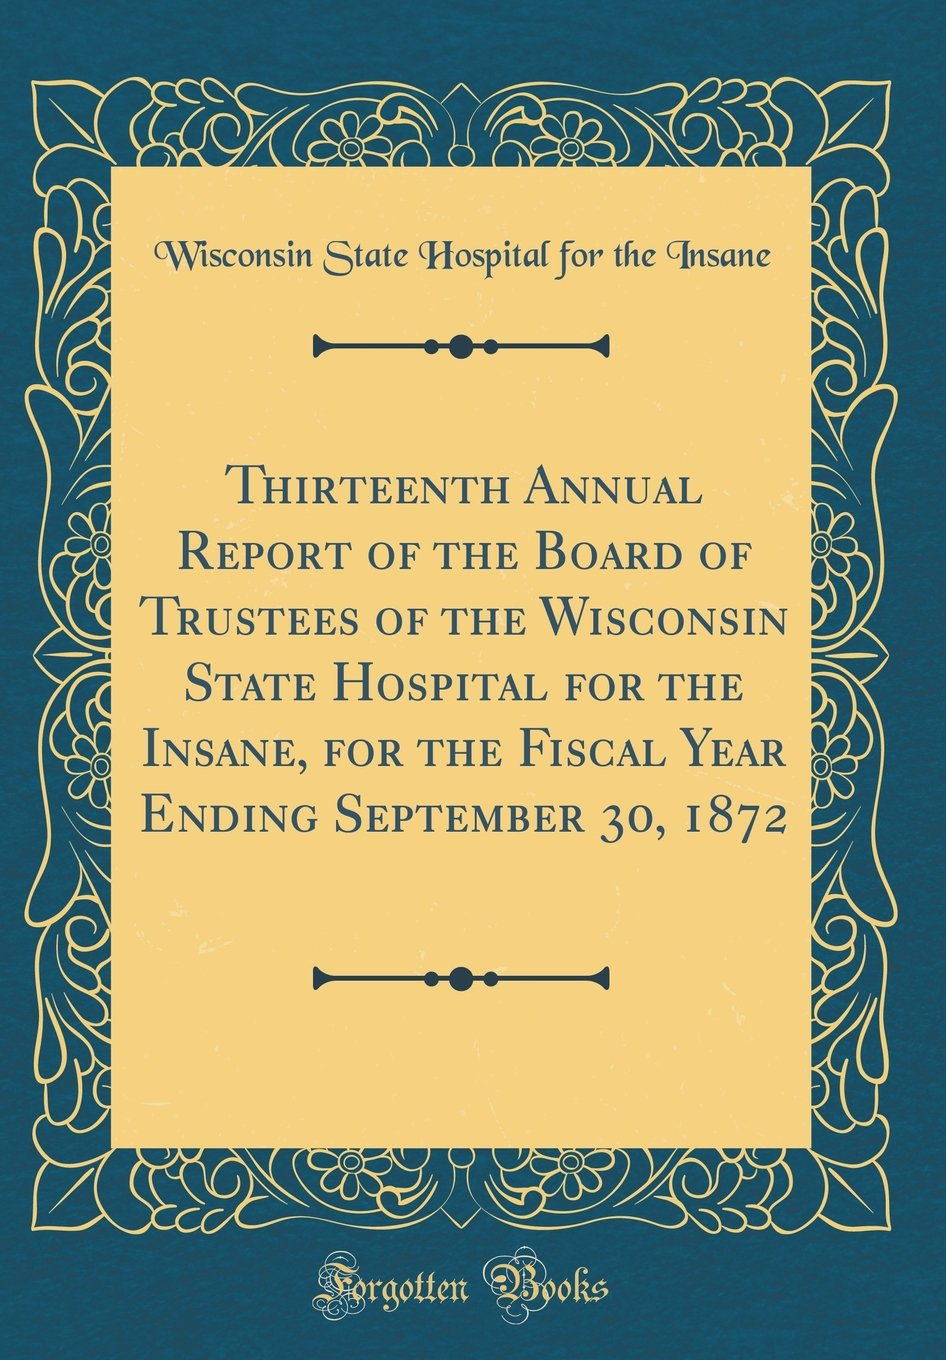 Download Thirteenth Annual Report of the Board of Trustees of the Wisconsin State Hospital for the Insane, for the Fiscal Year Ending September 30, 1872 (Classic Reprint) ebook